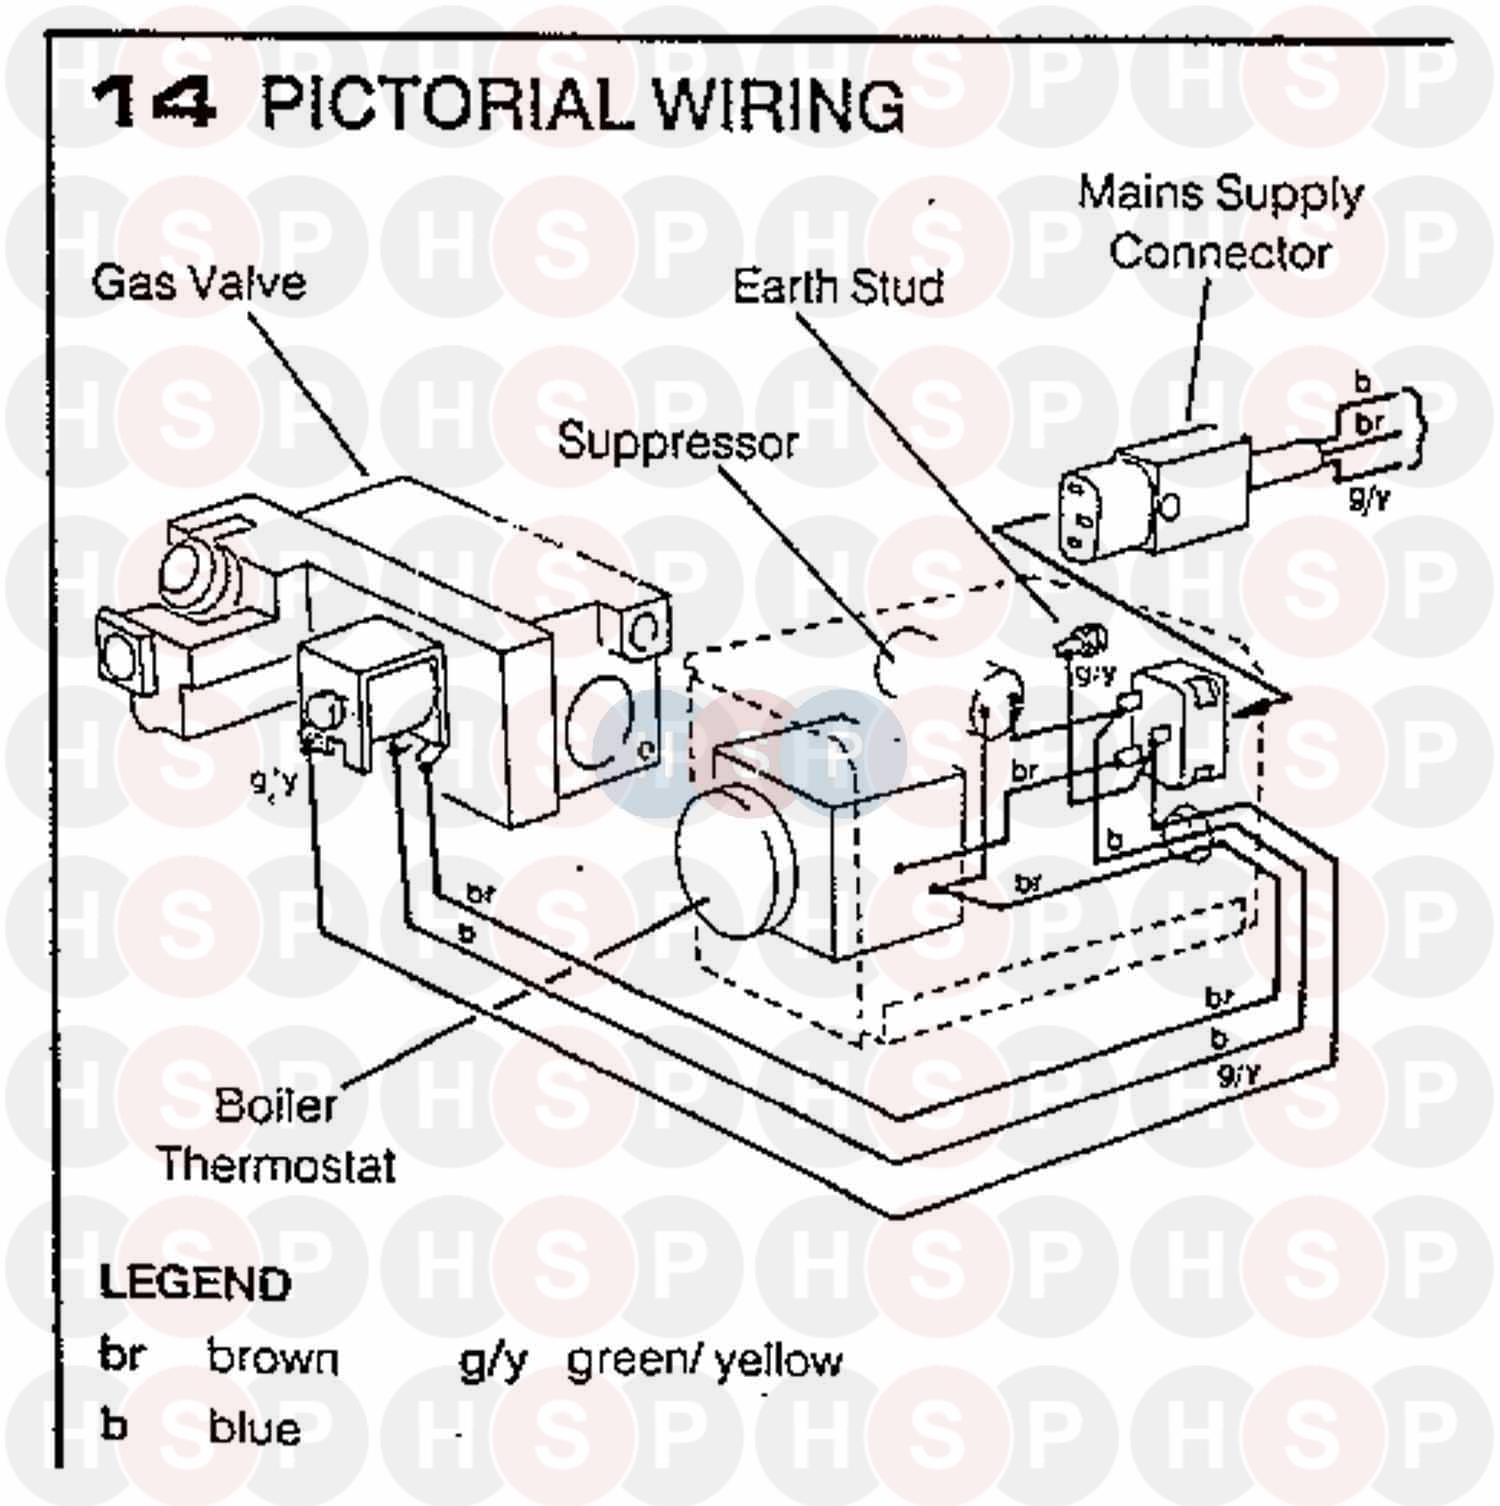 Ideal W2000 Cf 60n Wiring Diagram 1 Heating Spare Parts Diagrams Click The To Open It On A New Page